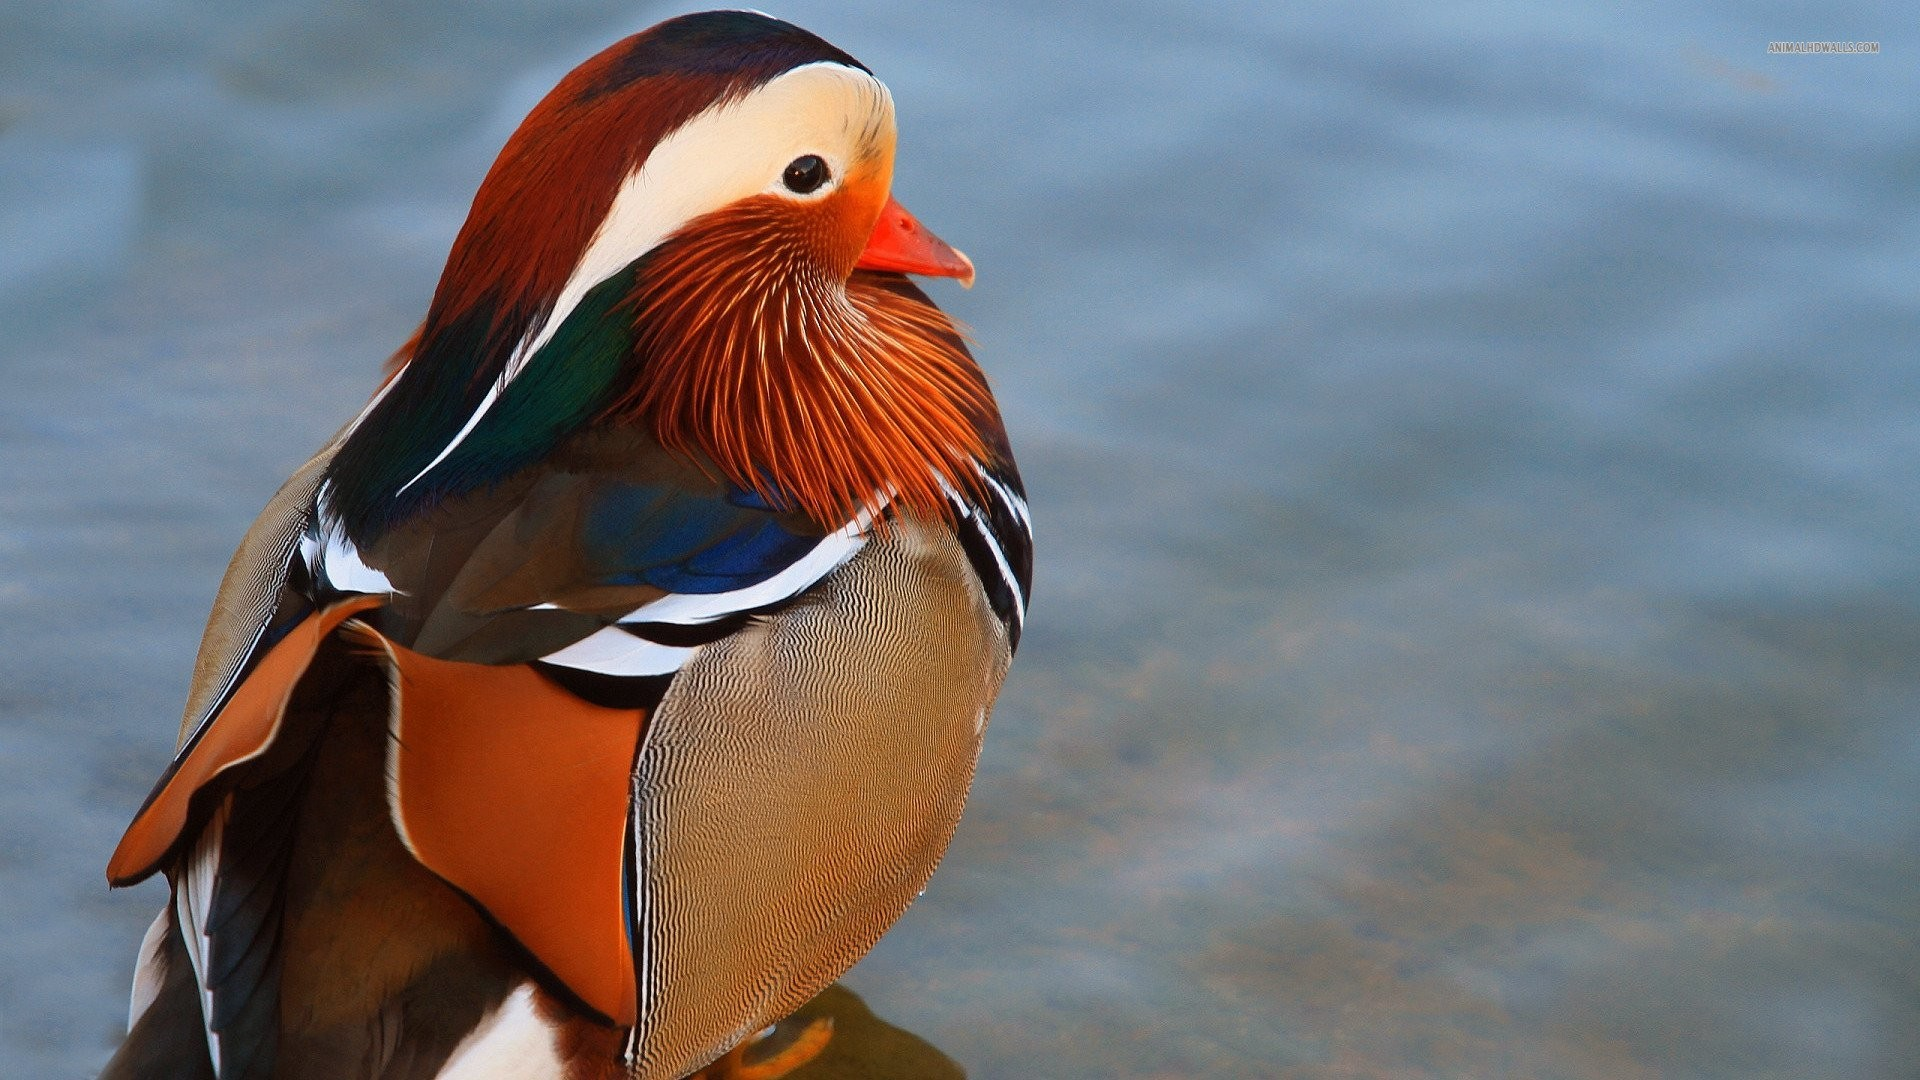 Res: 1920x1080, Ducks Tag - Mandarin Duck Bird Ducks Image Of Flying for HD 16:9 High